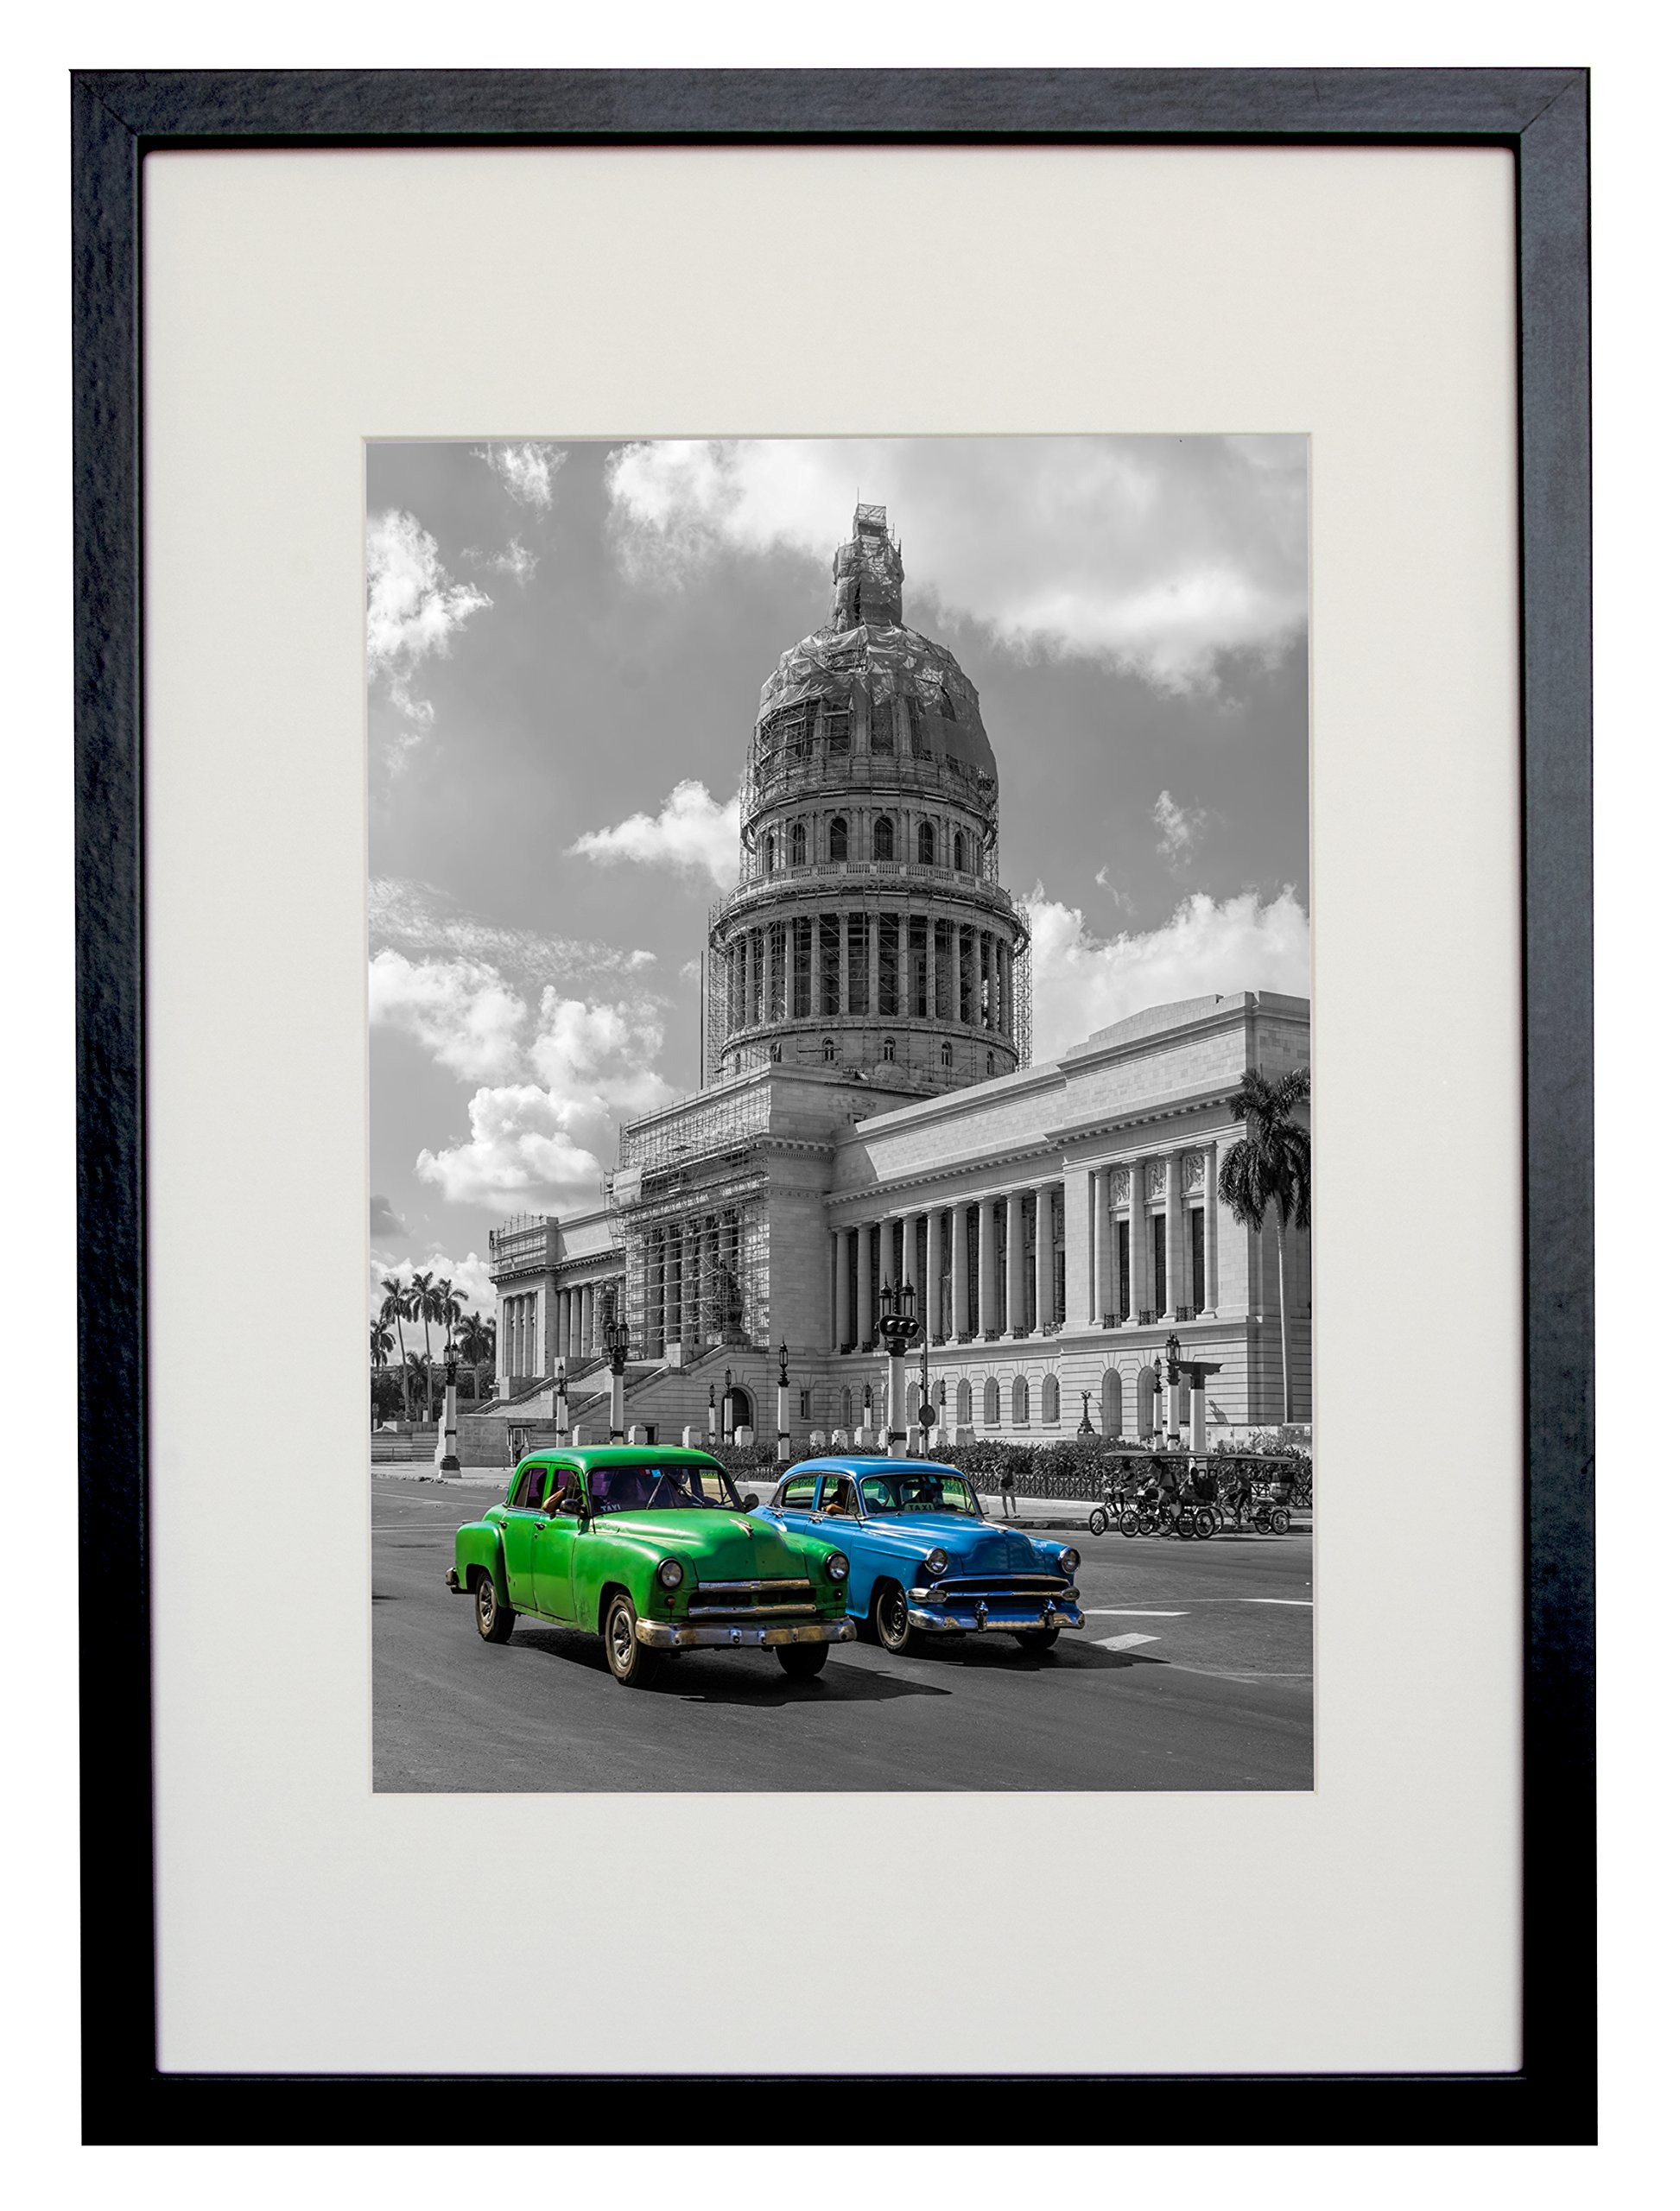 BD ART 29.7x42 cm (A3) Black Picture Frame with Mat for Photo 21x30 cm (A4) by BD ART